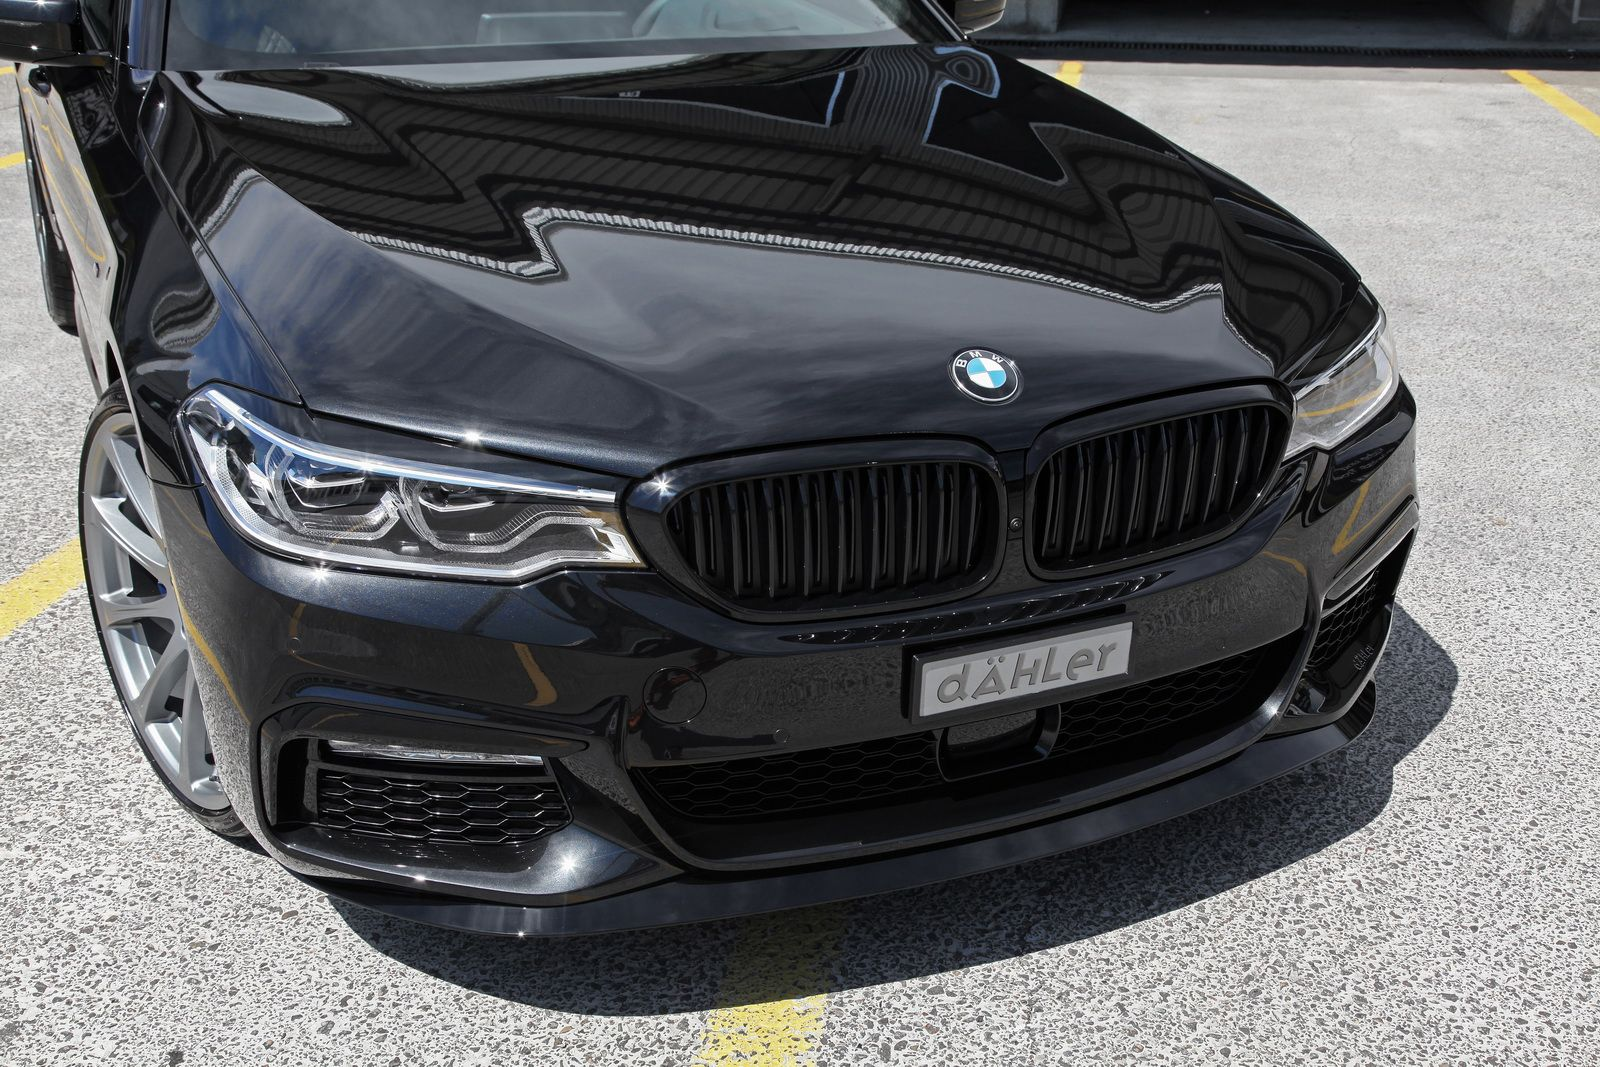 New Bmw 5 Series G31 Puts On A Dahler Sports Suit